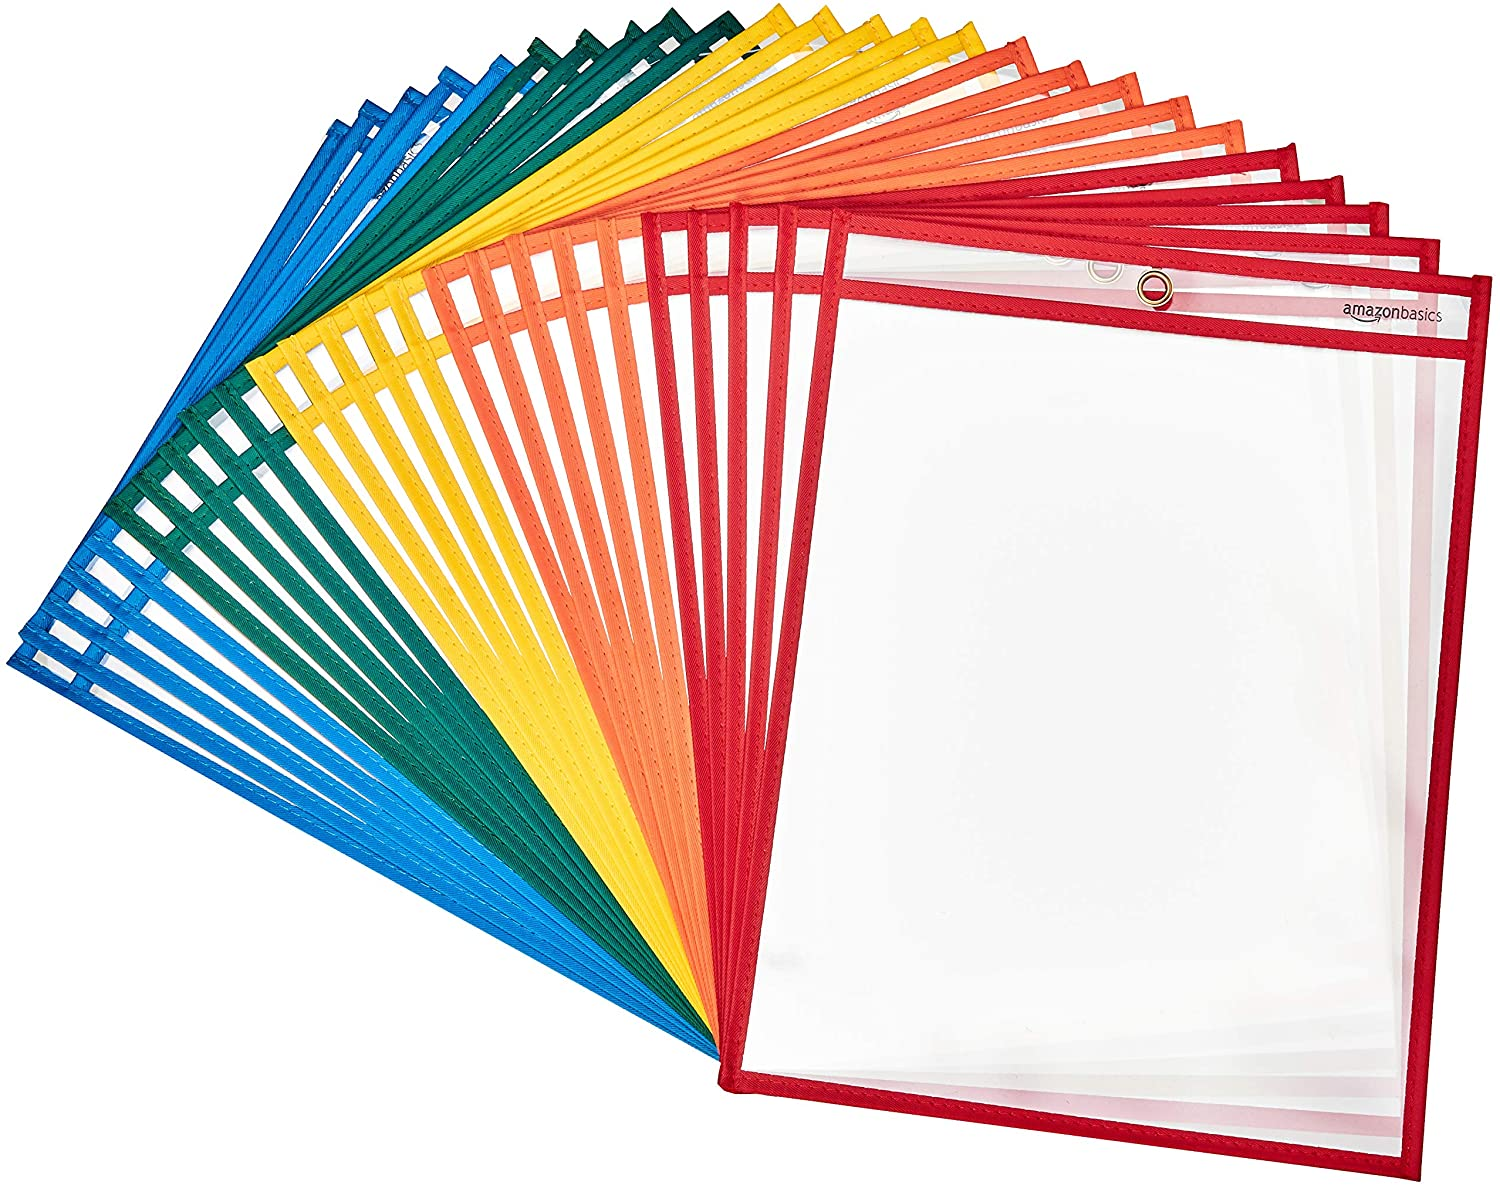 Pack of 25 Heavy Duty Dry Erase Pockets from the Our Must Haves: Essential Homeschool Supply Checklist article from That Homeschool Family written by Elizabeth Dukart